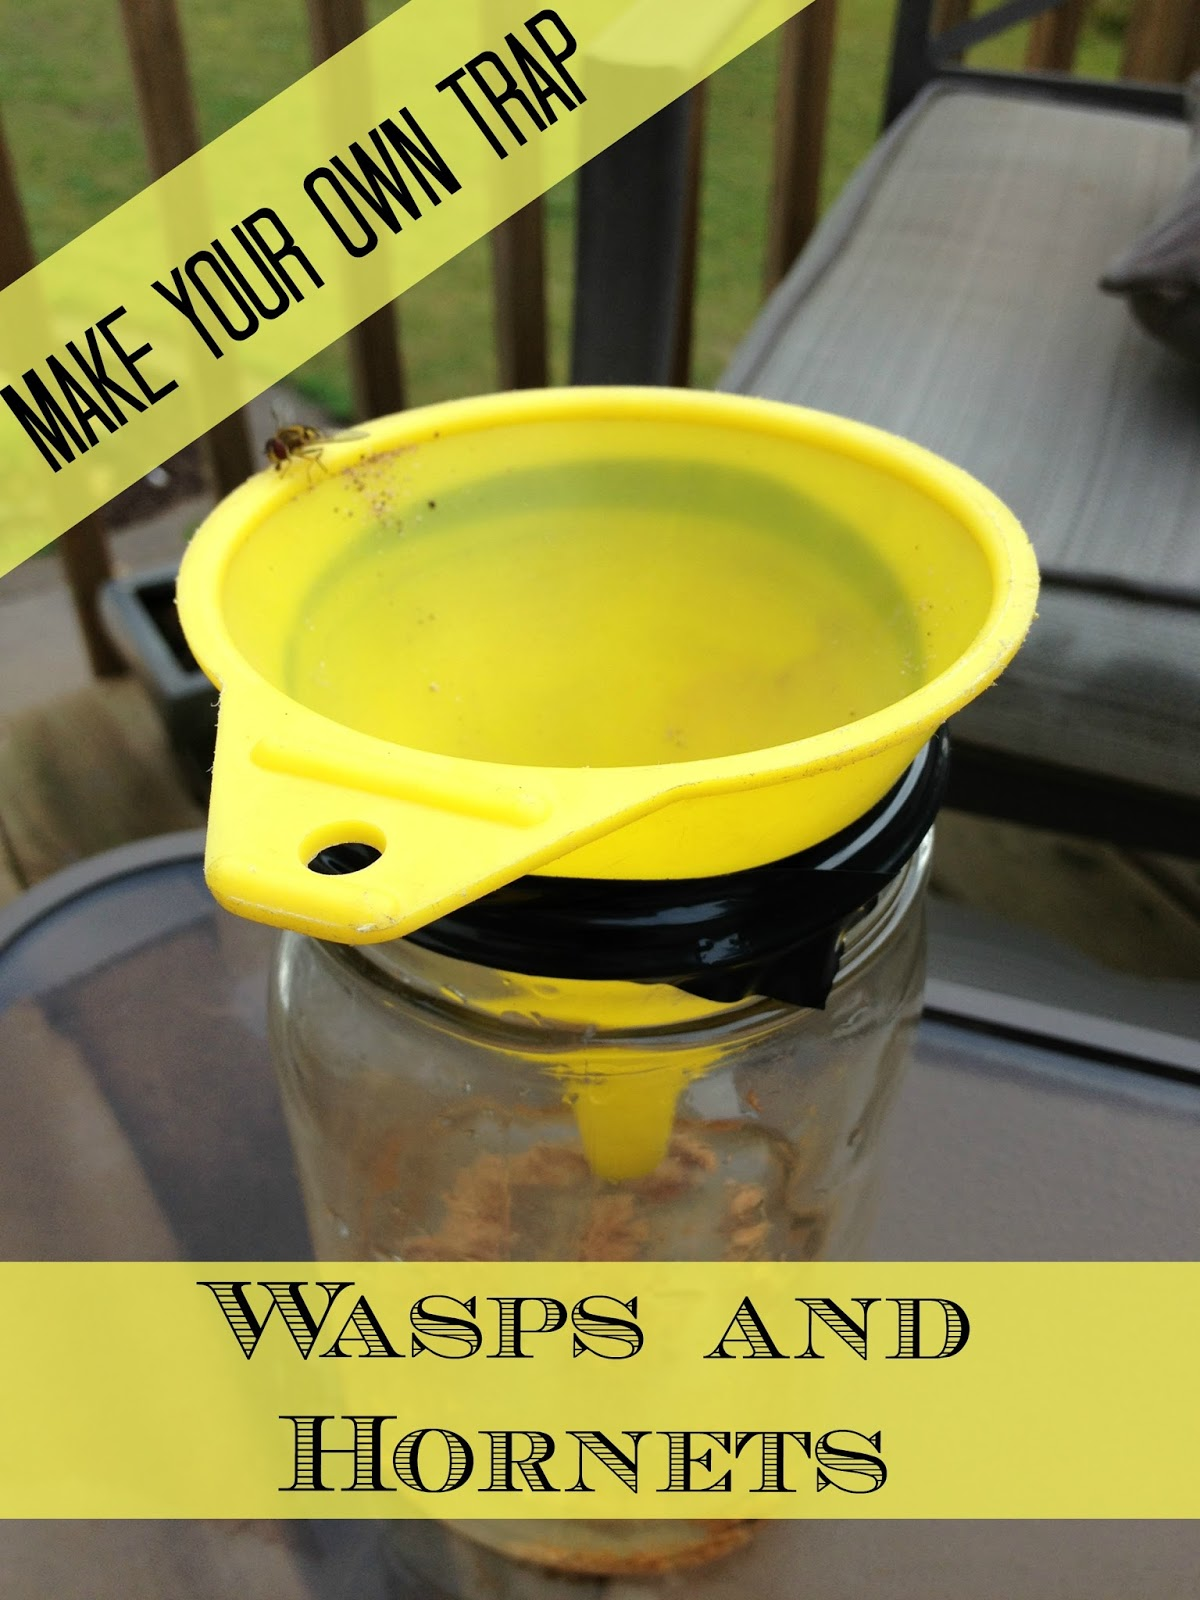 The Serene Swede Diy Hornet And Wasp Trap